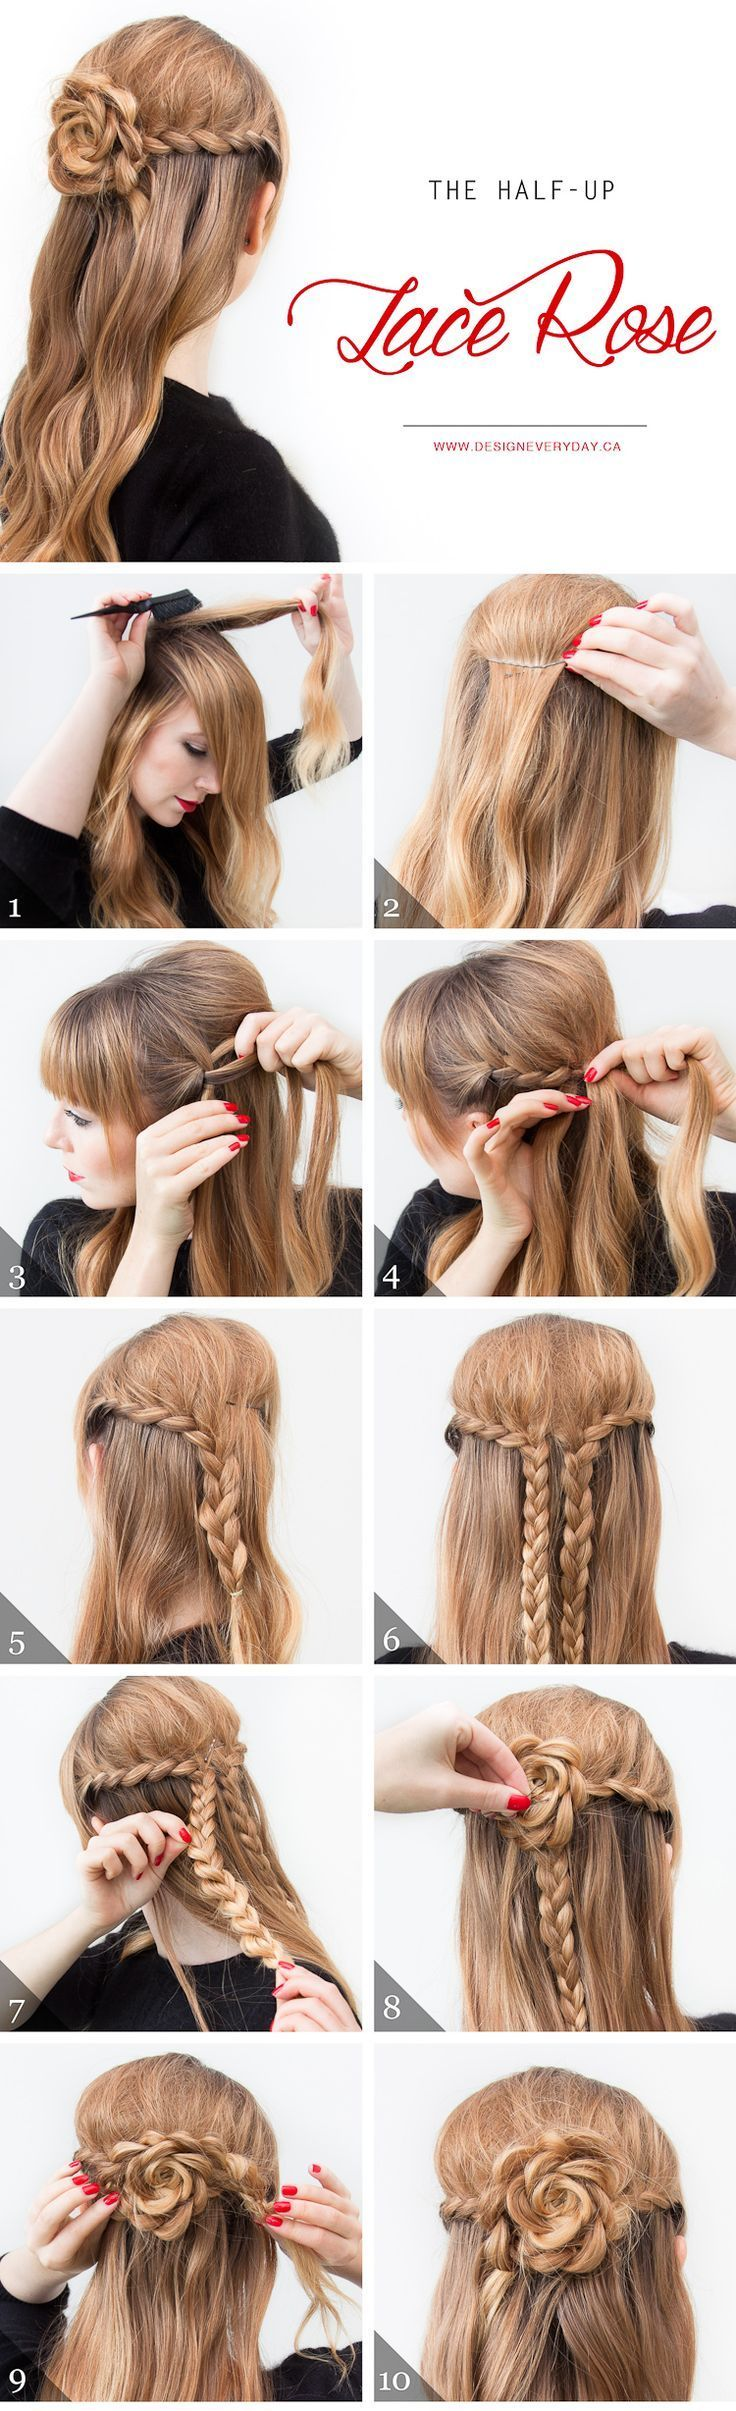 The Half Up Lace Rose Hairstyle Pictures Photos And Images For Facebook Tumblr Pinterest And Twitter Long Hair Styles Diy Hairstyles Easy Hair Styles